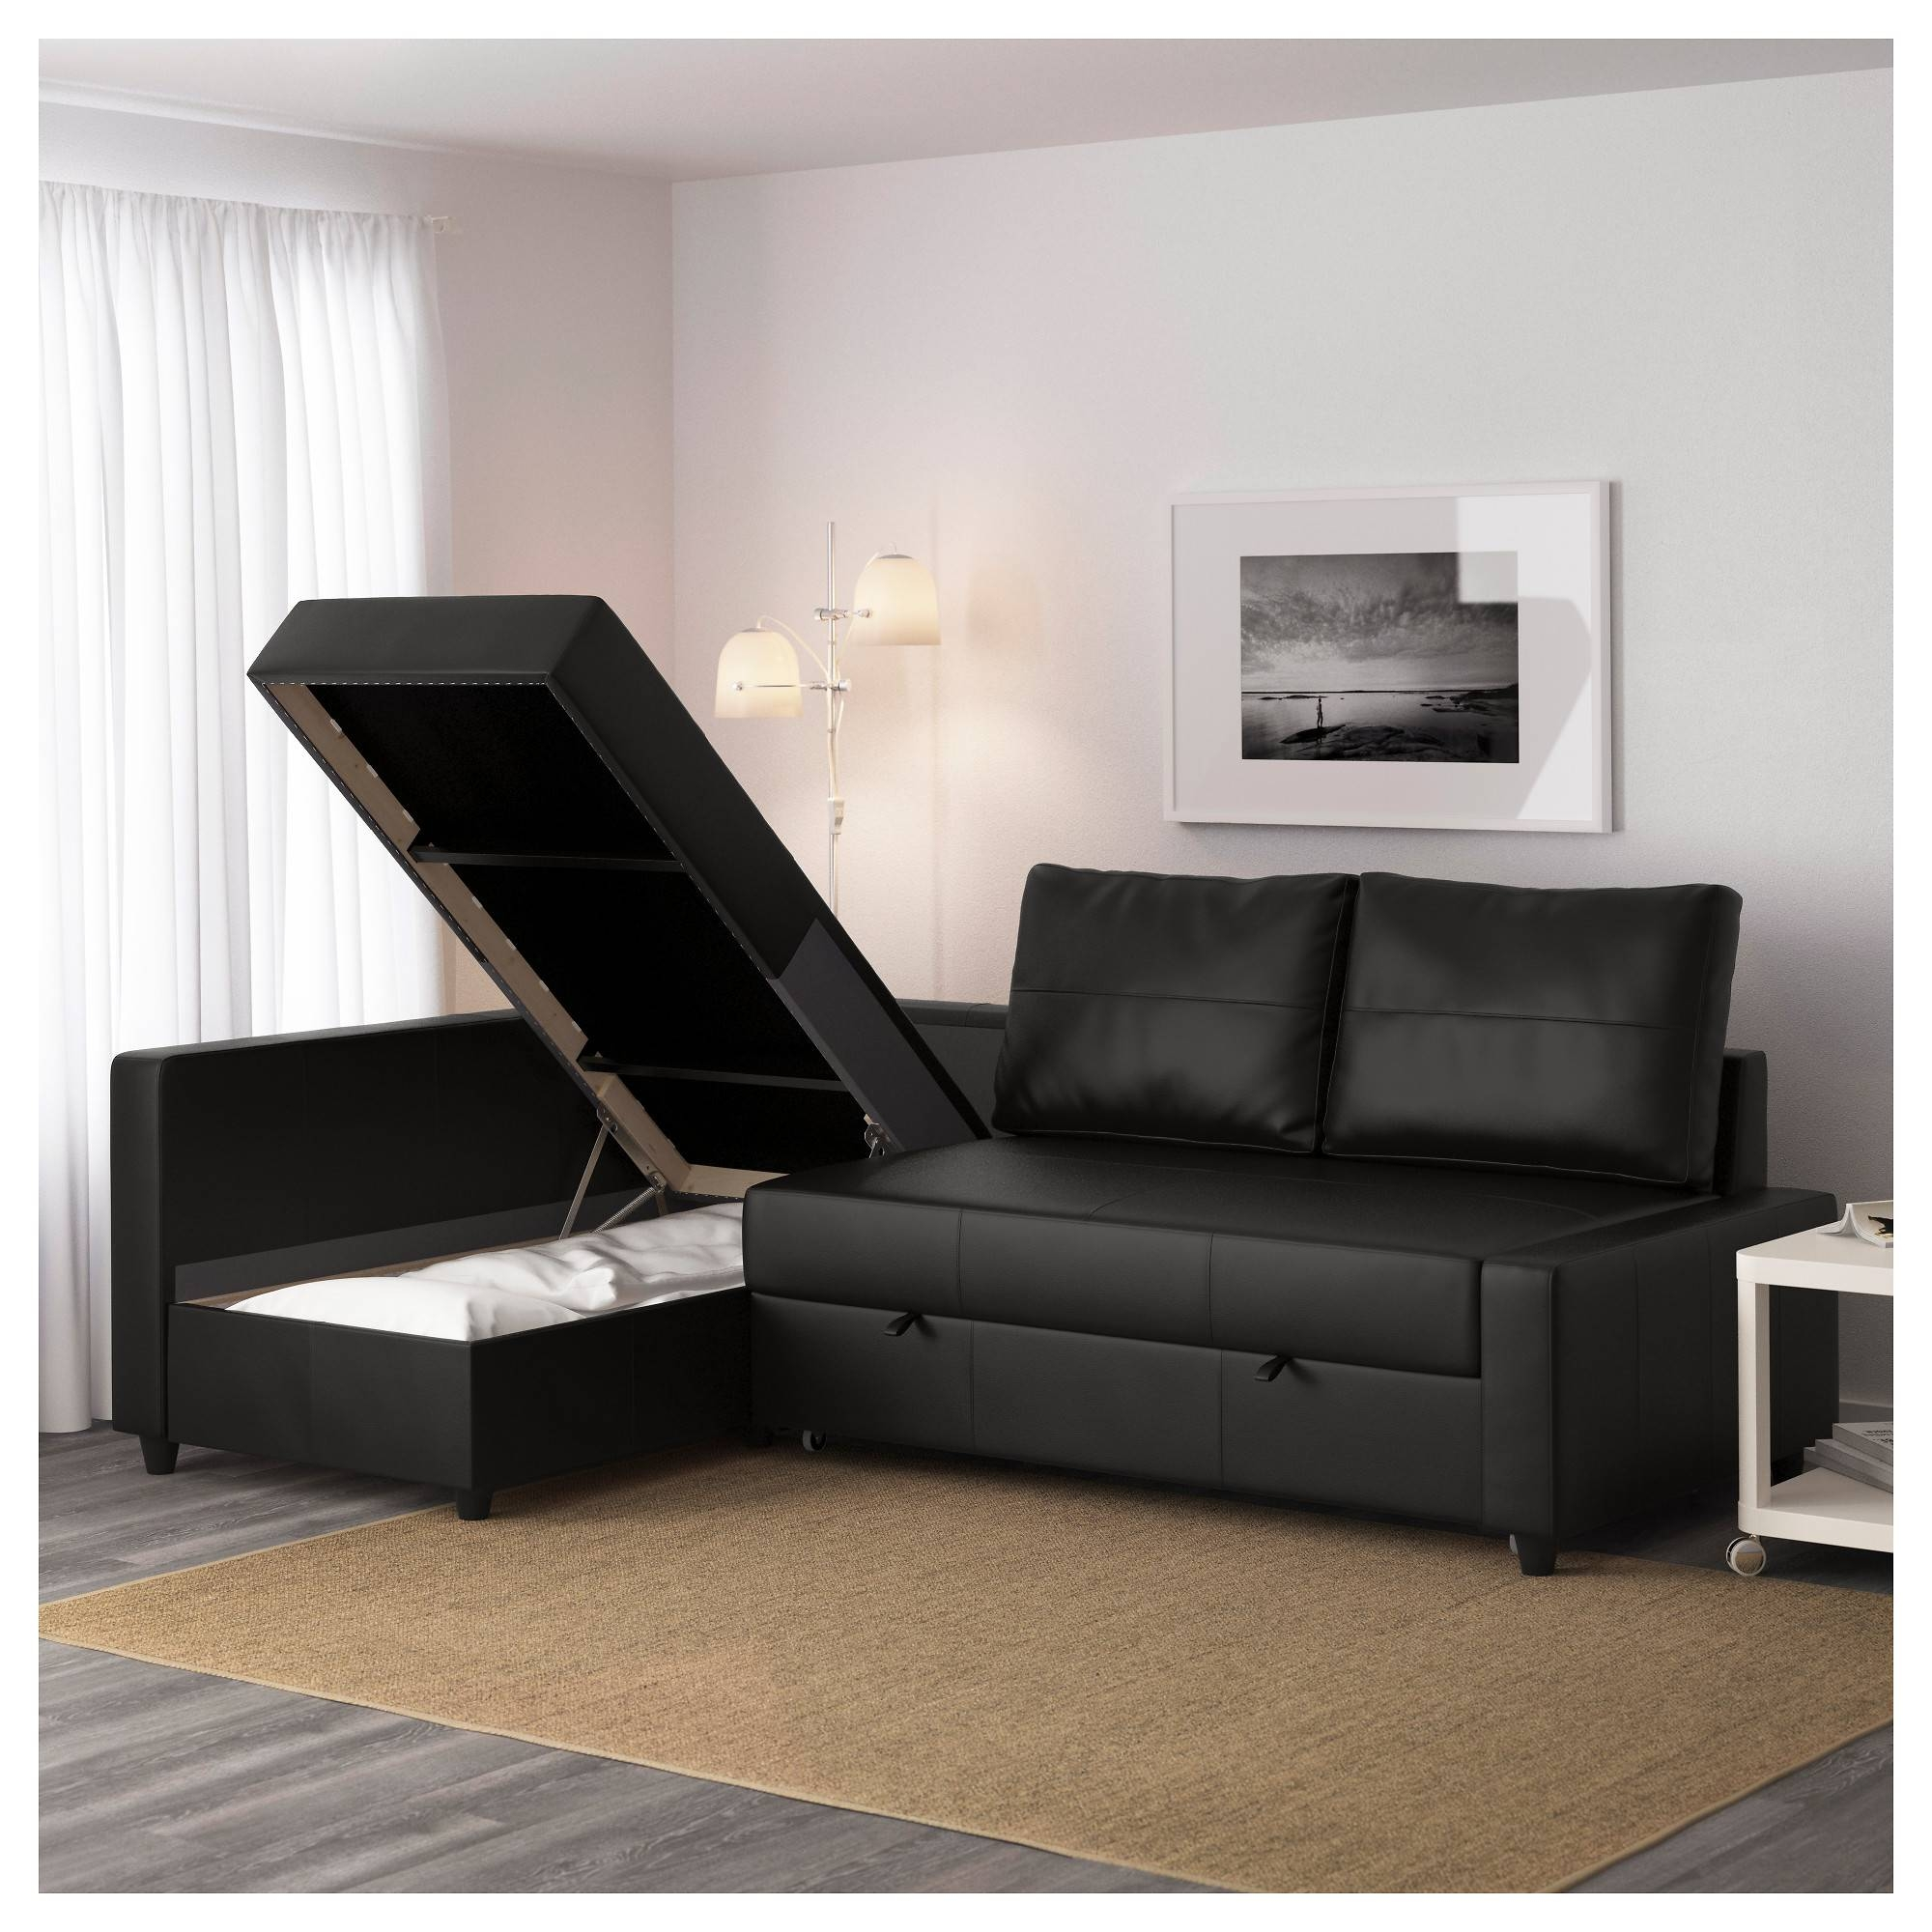 Friheten Sleeper Sectional,3 Seat W/storage - Skiftebo Dark Gray throughout Manstad Sofa Bed With Storage From Ikea (Image 3 of 25)